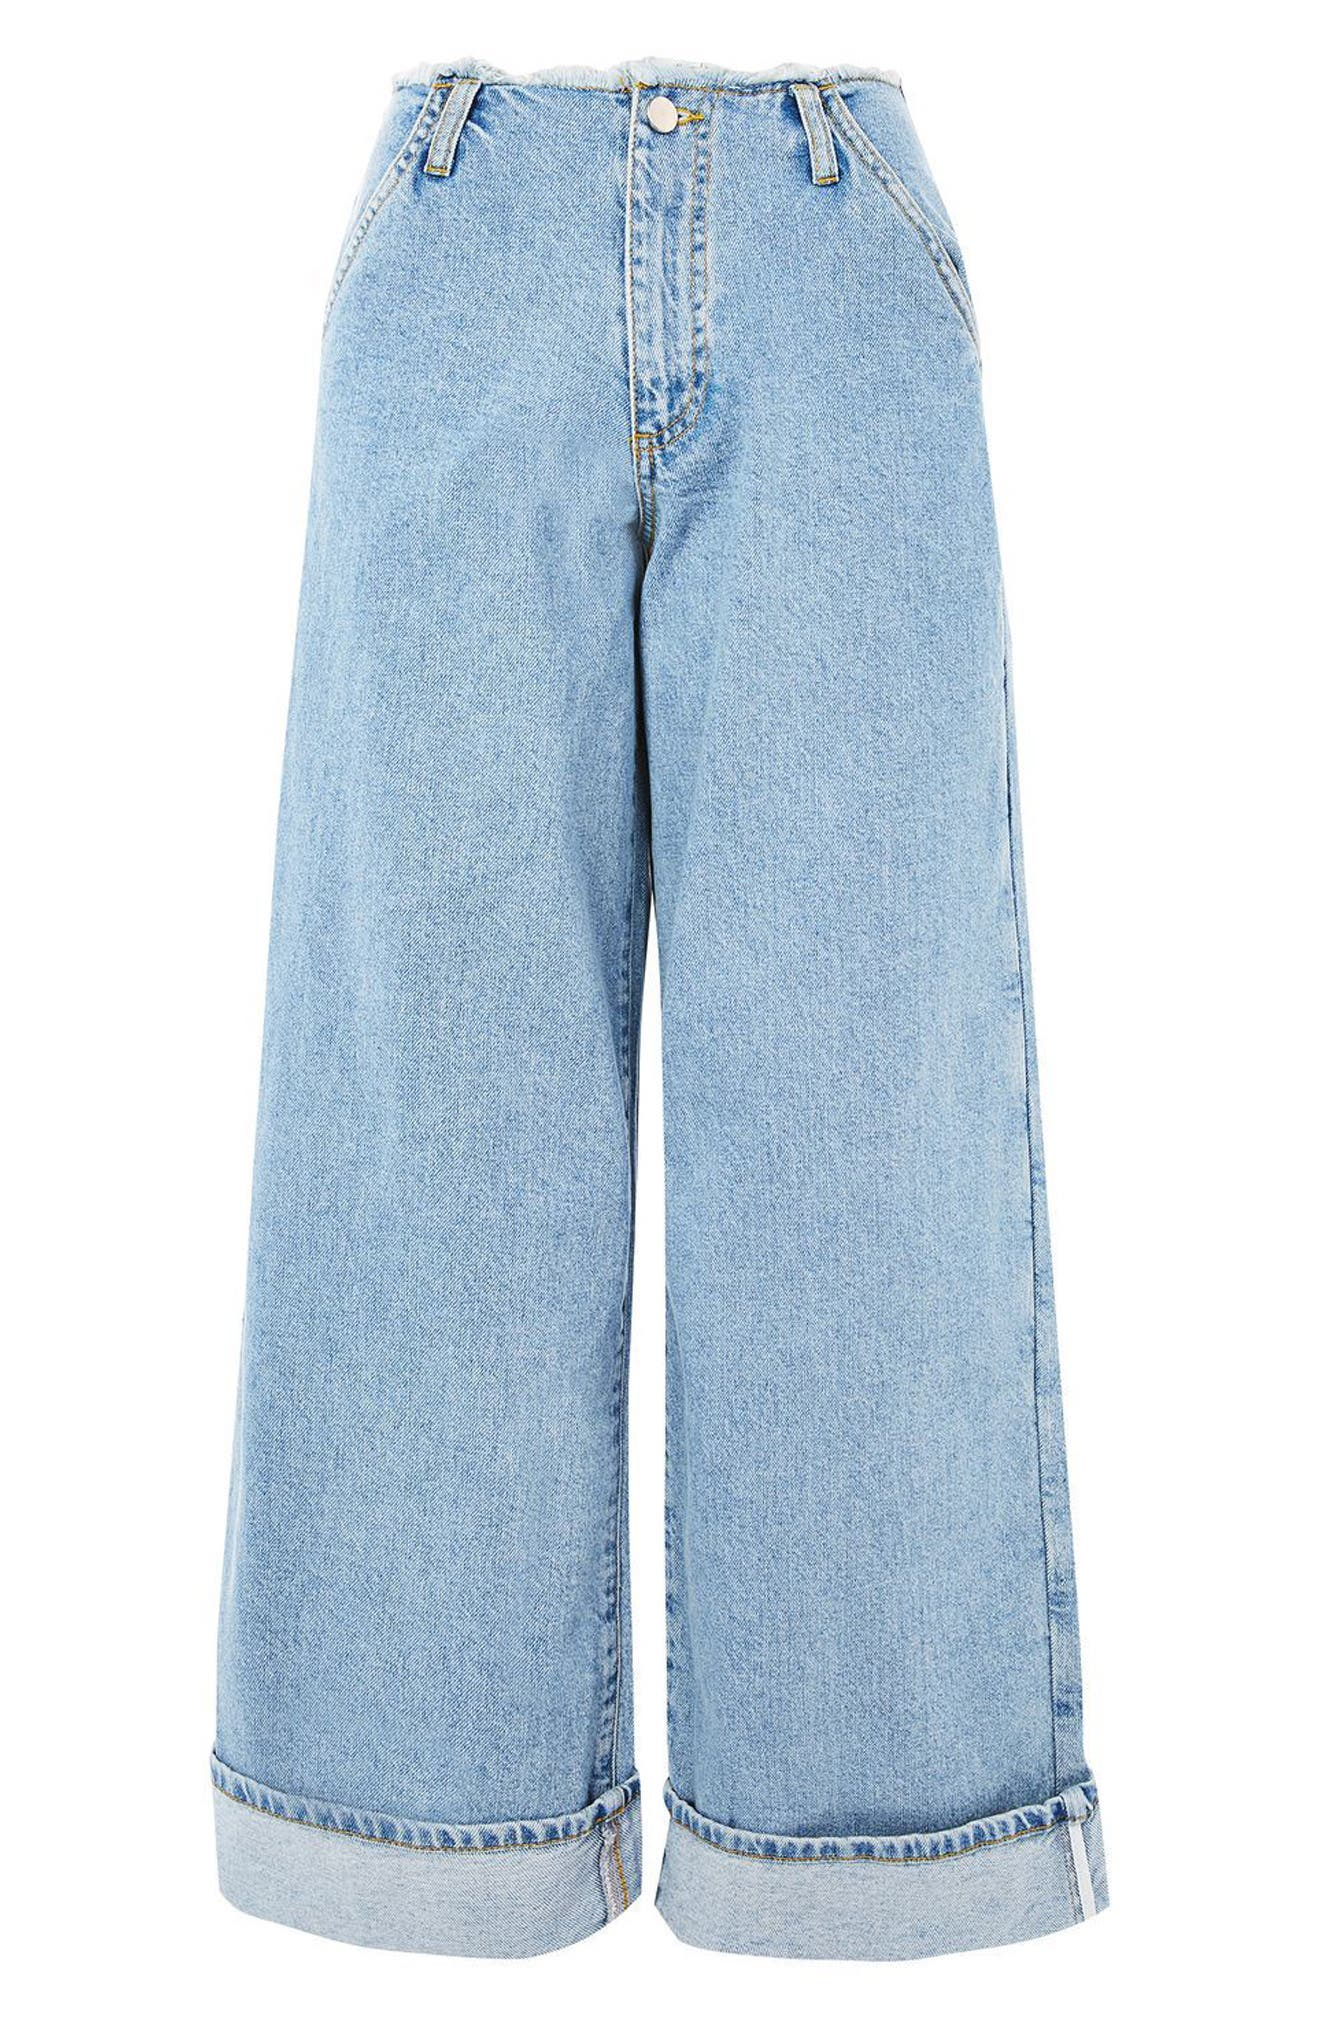 Frayed Waist Super Wide Leg Jeans,                             Alternate thumbnail 5, color,                             400